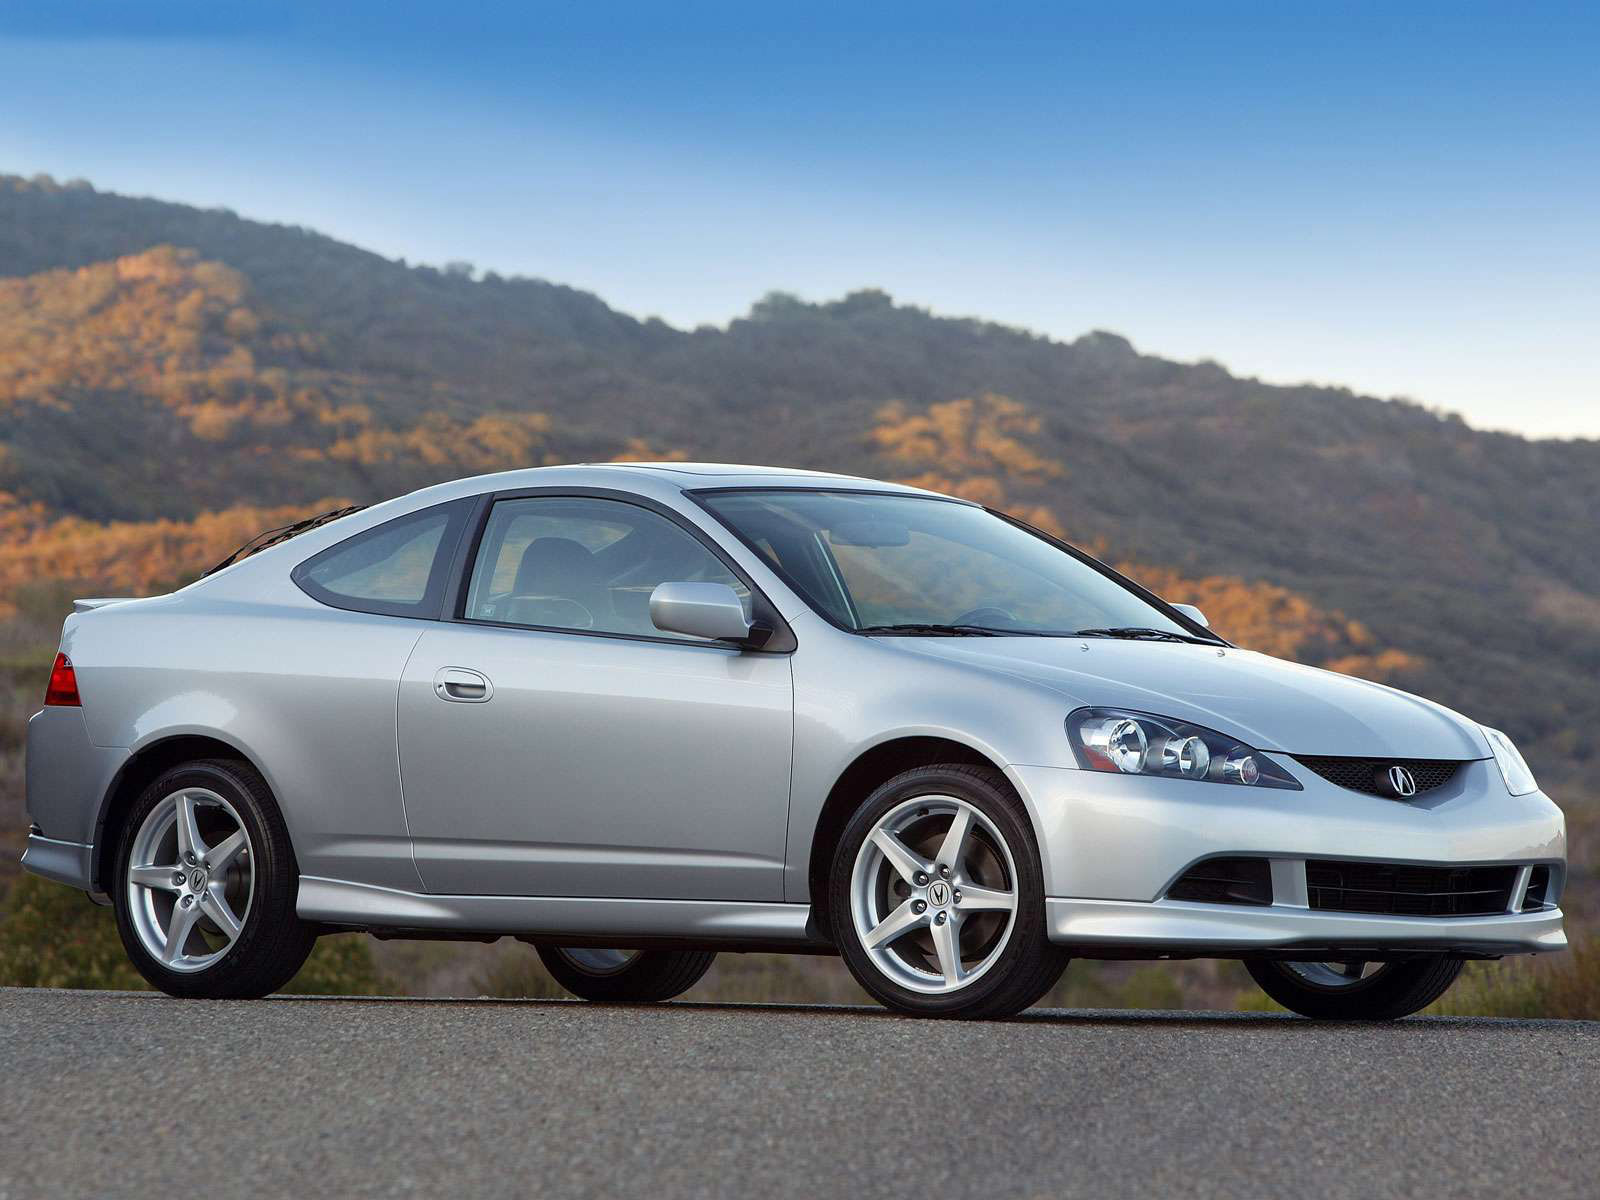 hight resolution of 2005 acura rsx type s photo 1